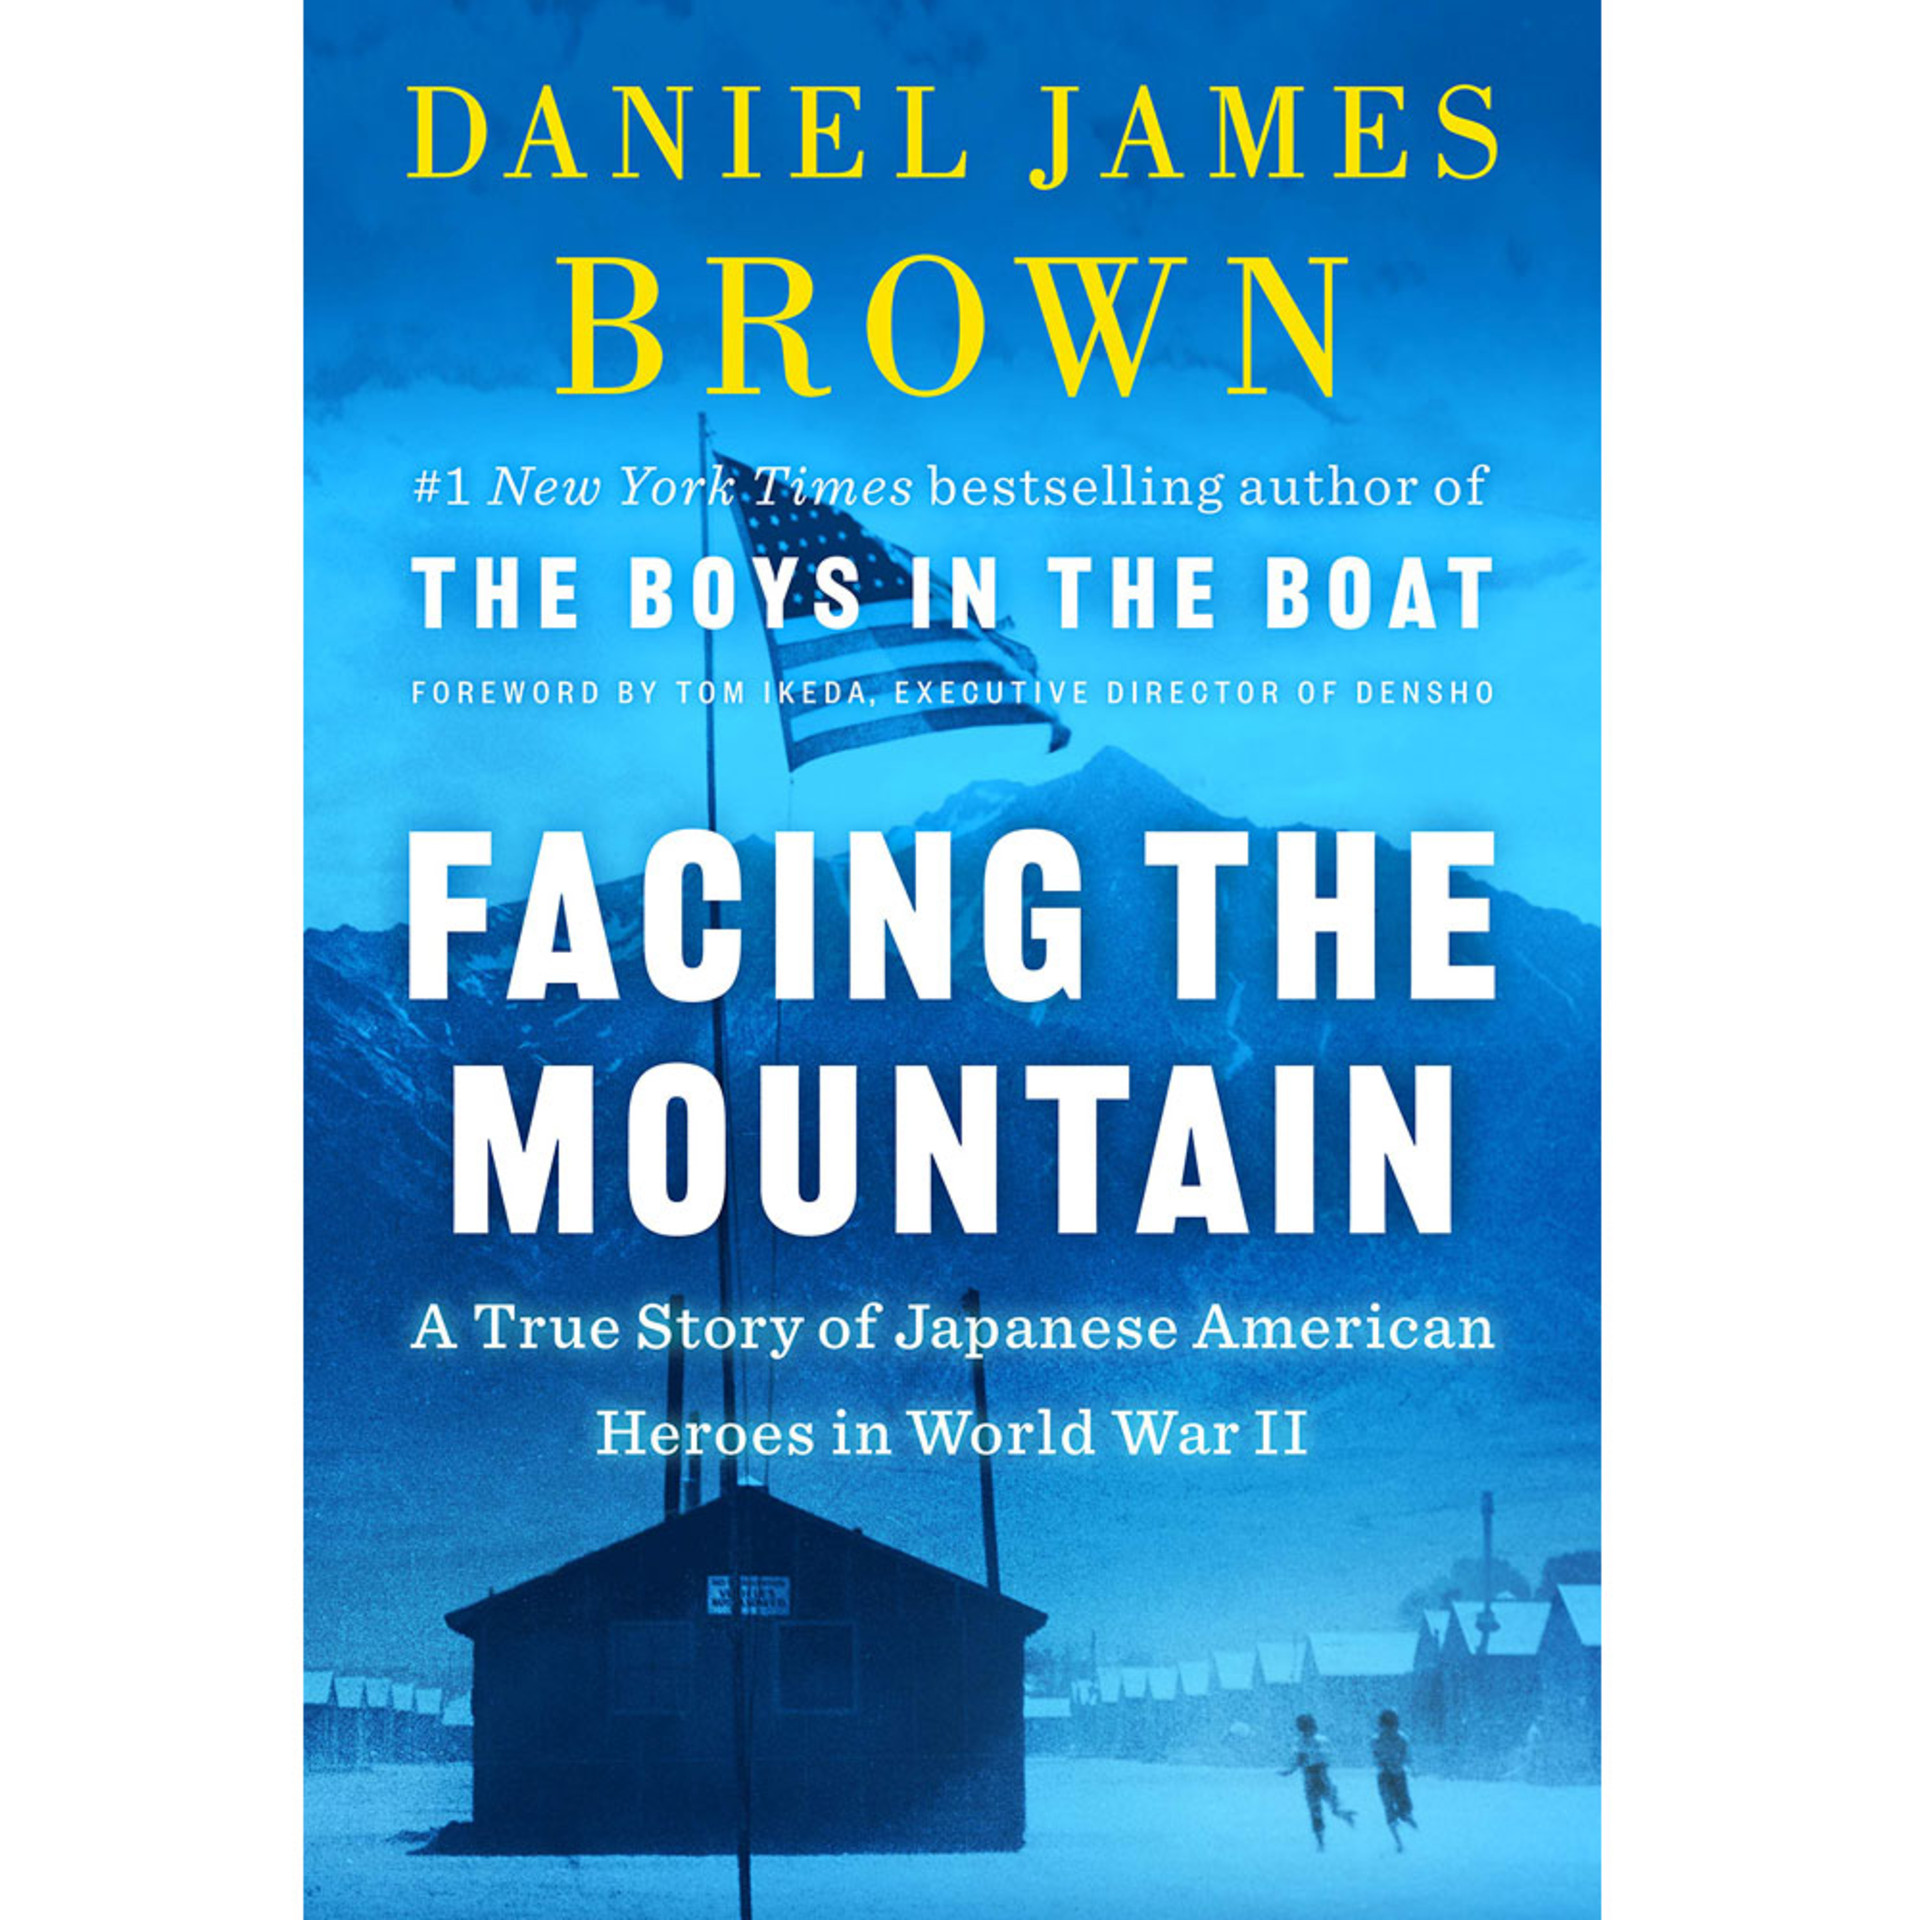 Facing the Mountain: A True Story of Japanese American Heroes in World War II by Daniel James Brown